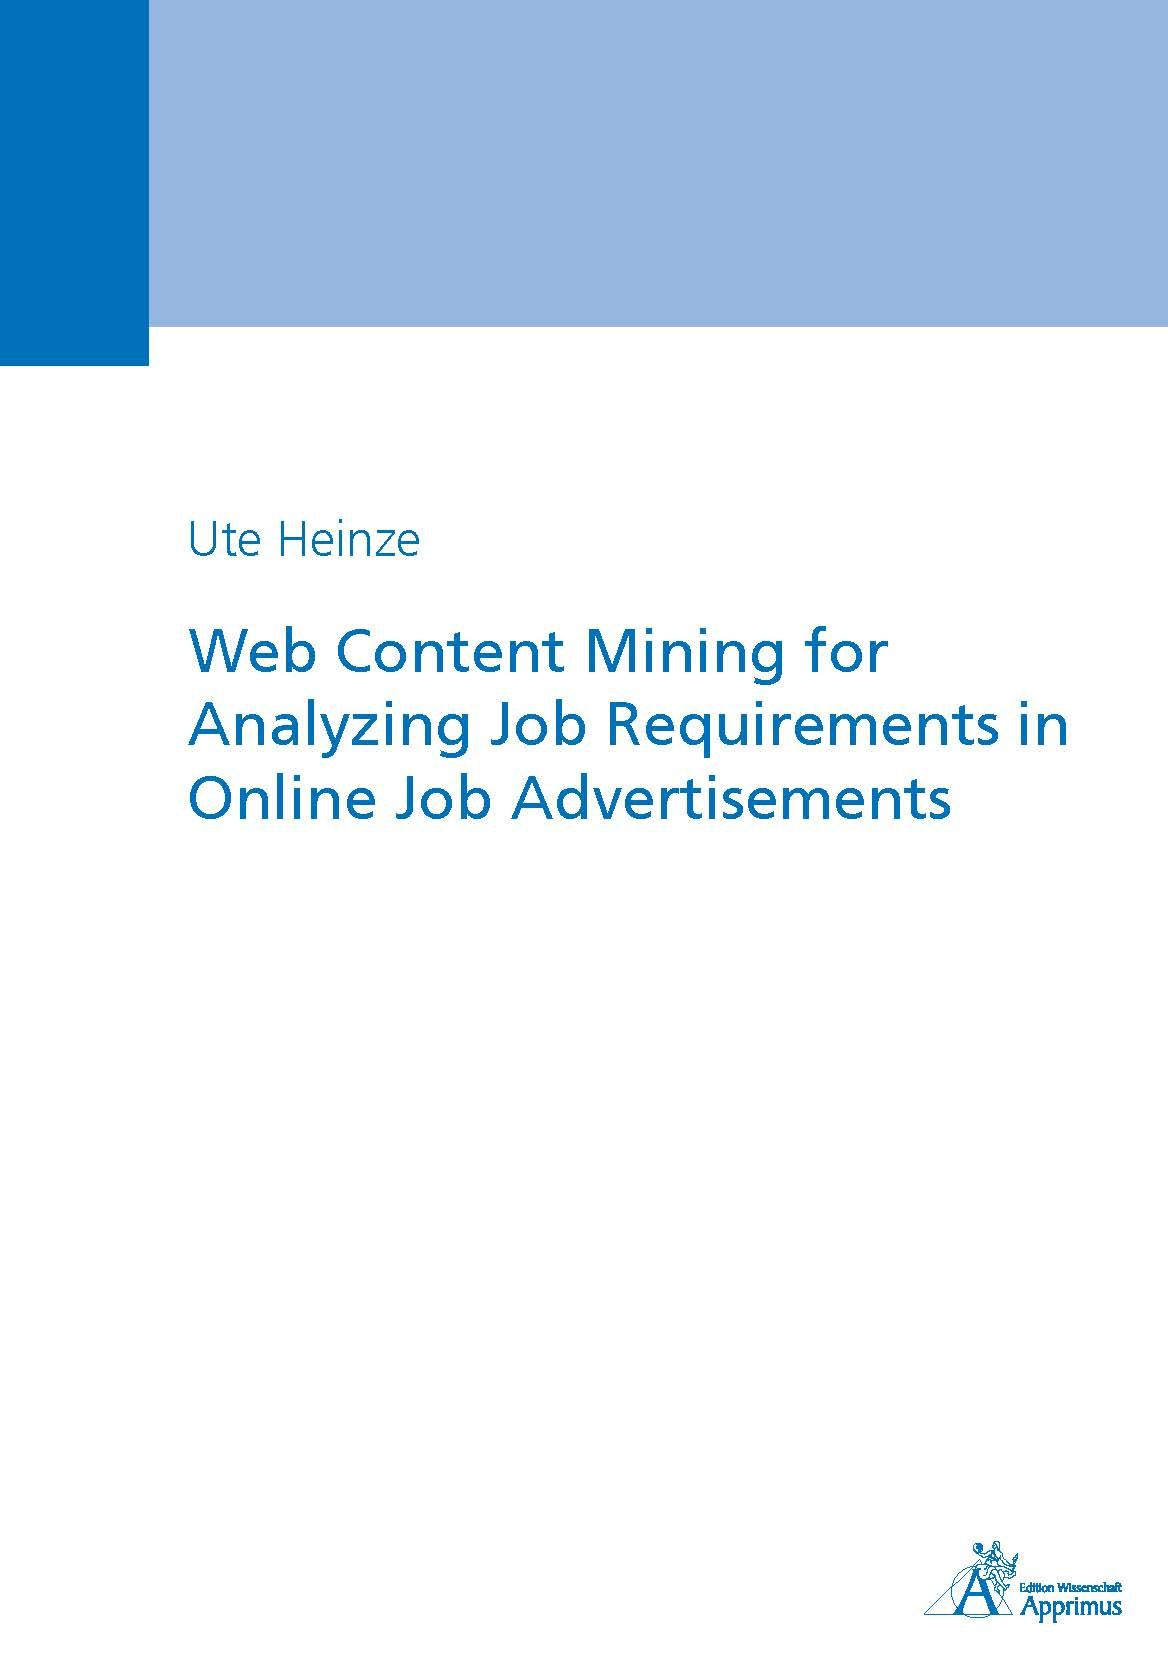 Web Content Mining for Analyzing Job Requirements in Online Job Advertisements